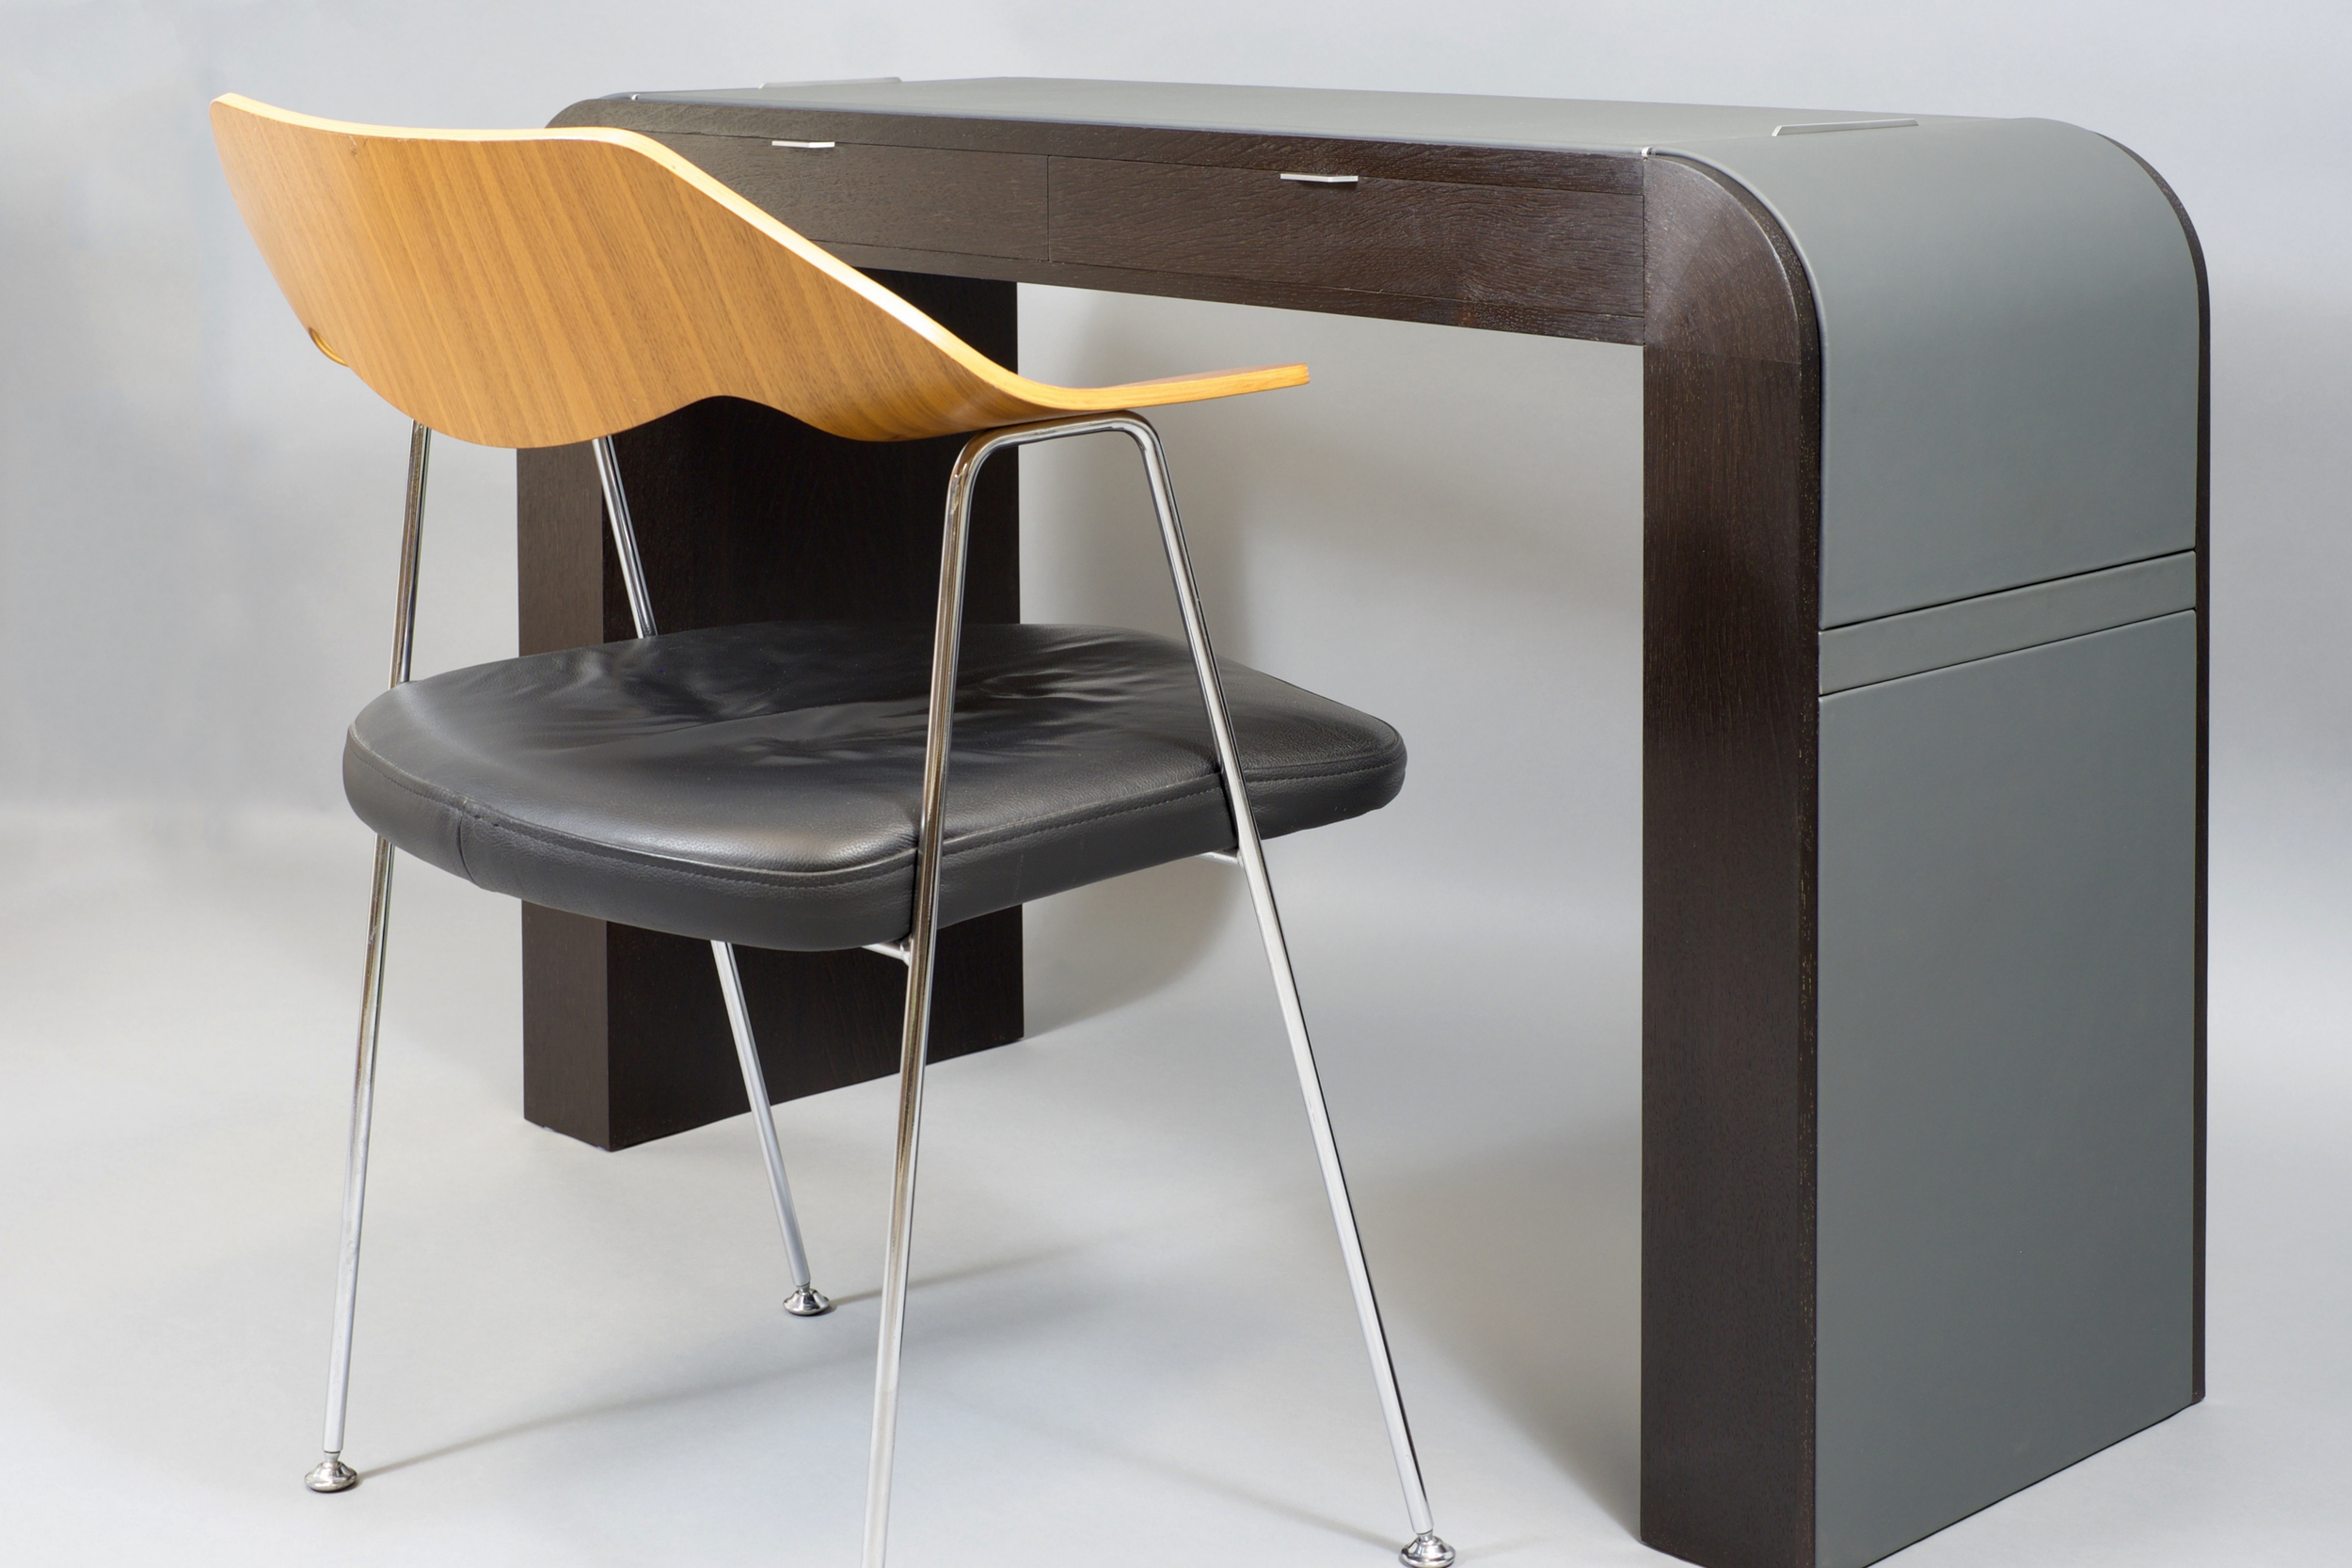 Desk_with_Chair.jpg